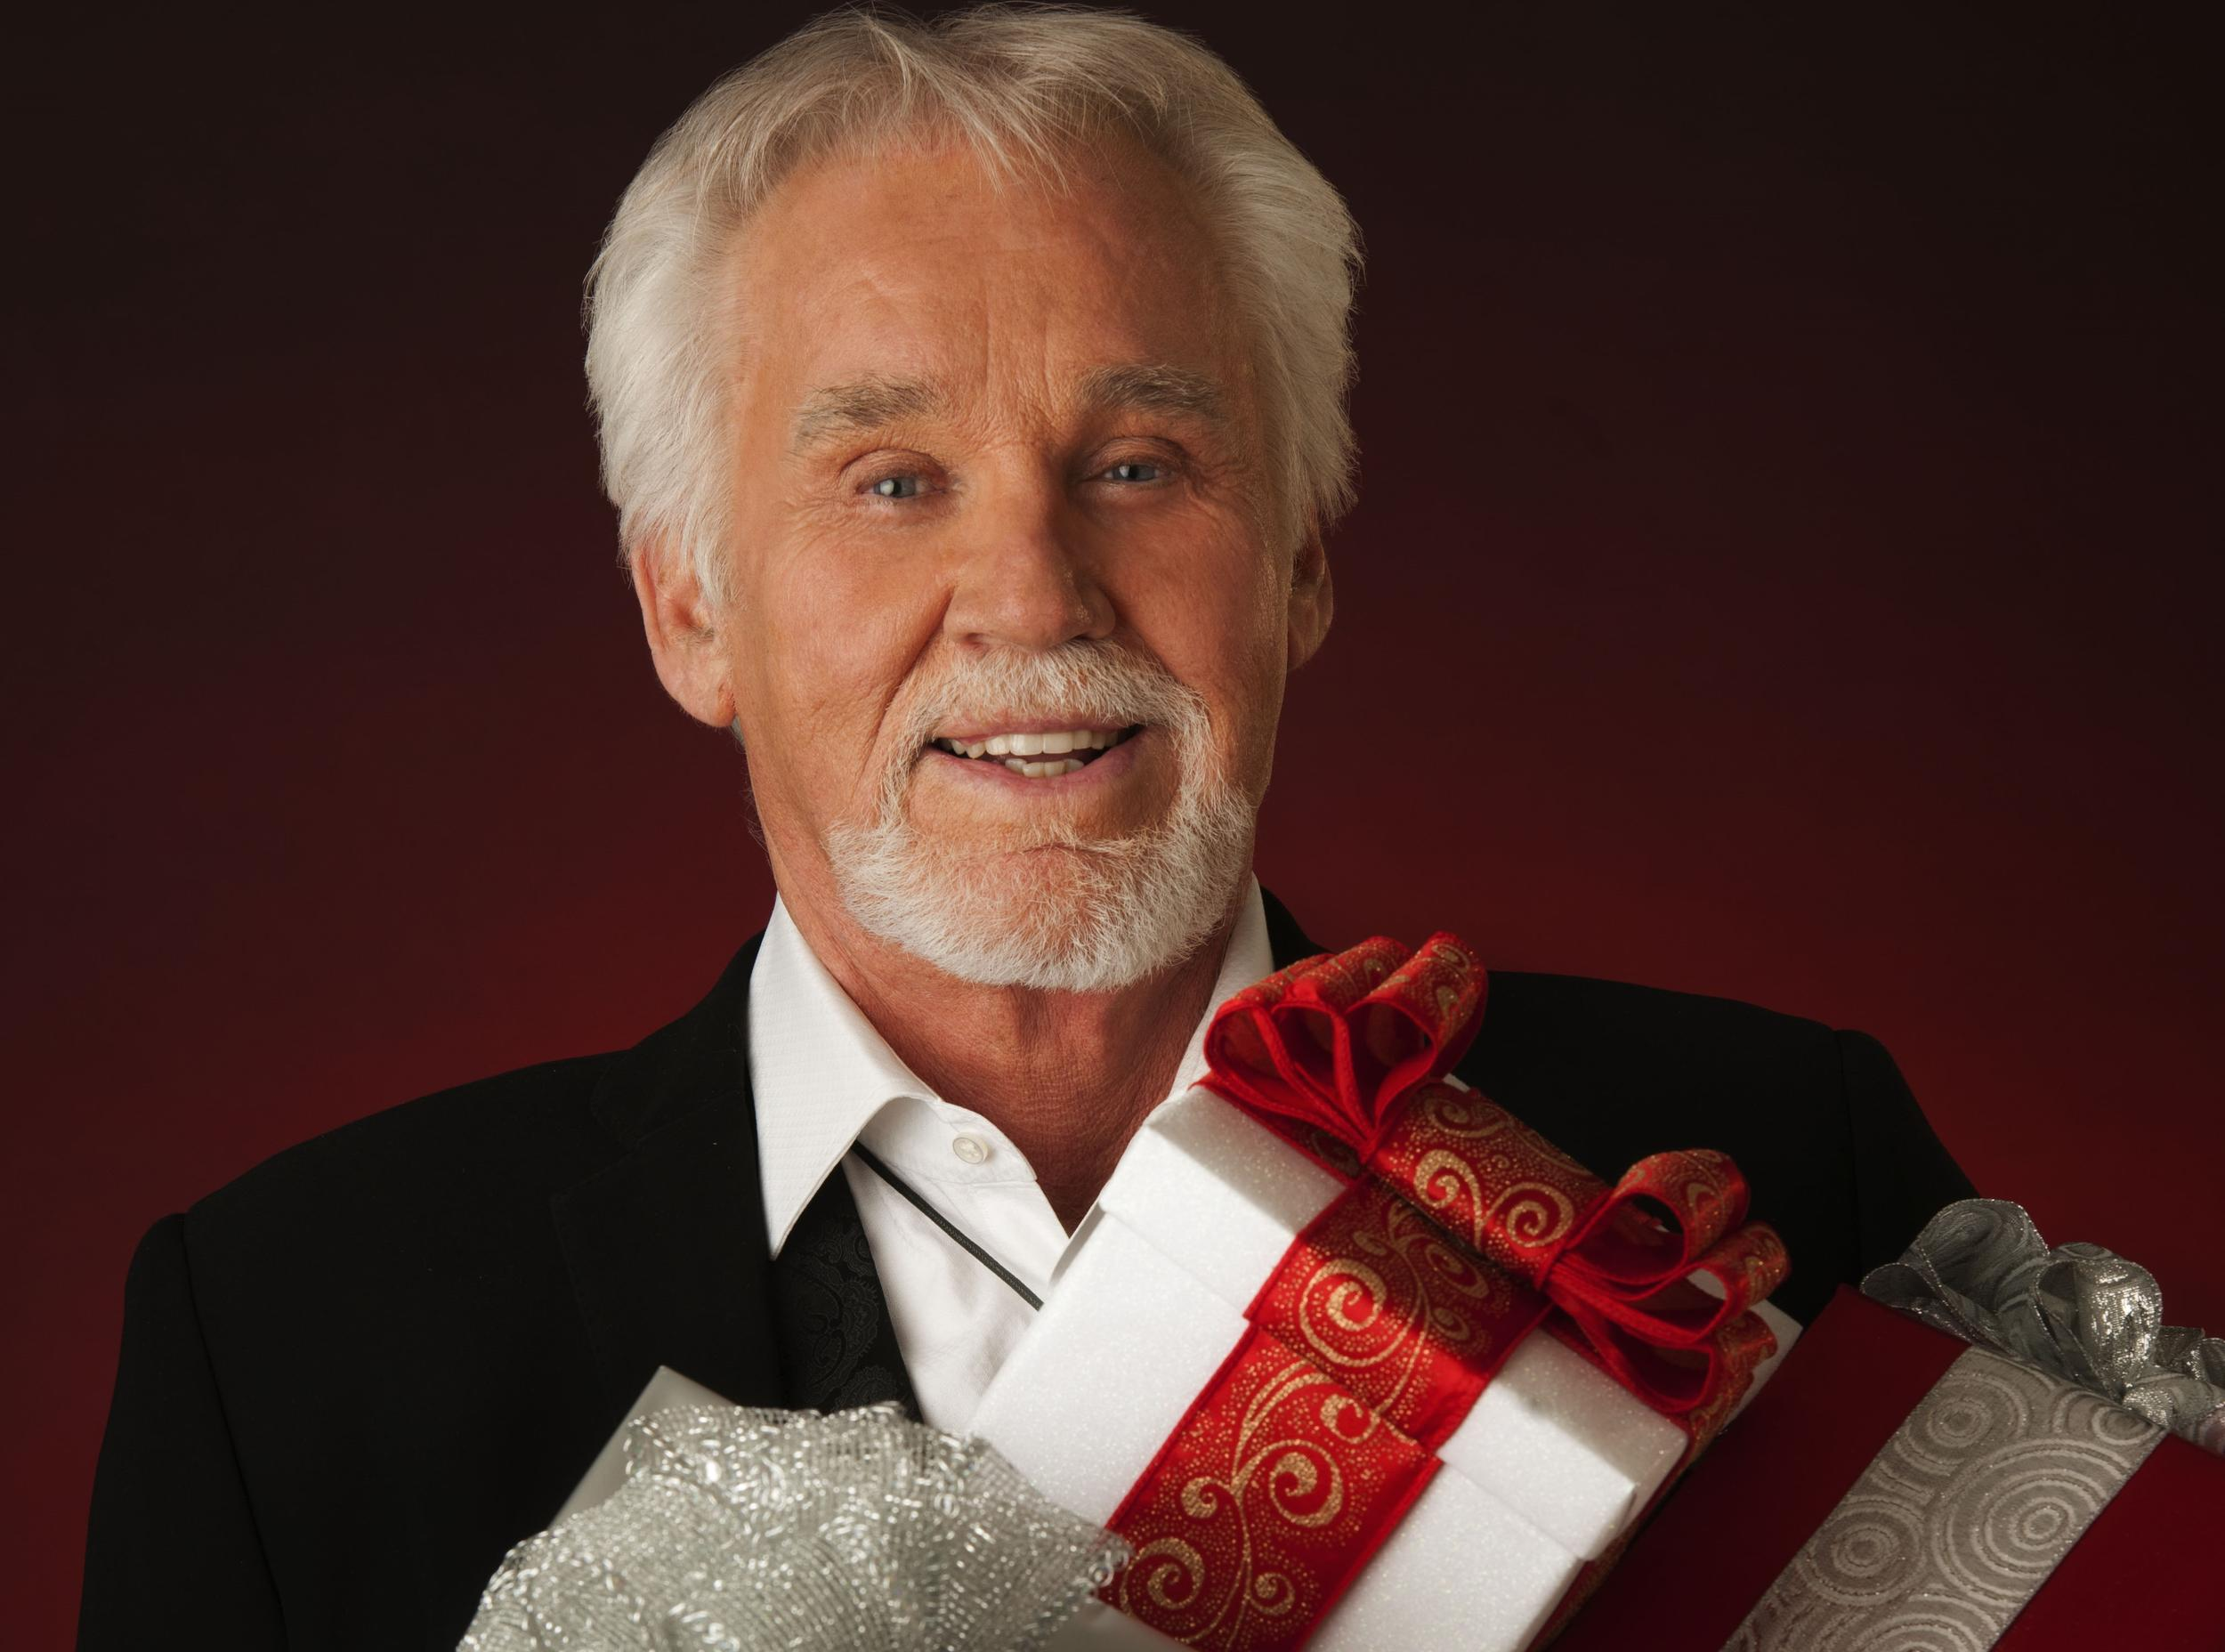 Concert Review: Kenny Rogers in Terre Haute, Indiana | Sounds Like ...